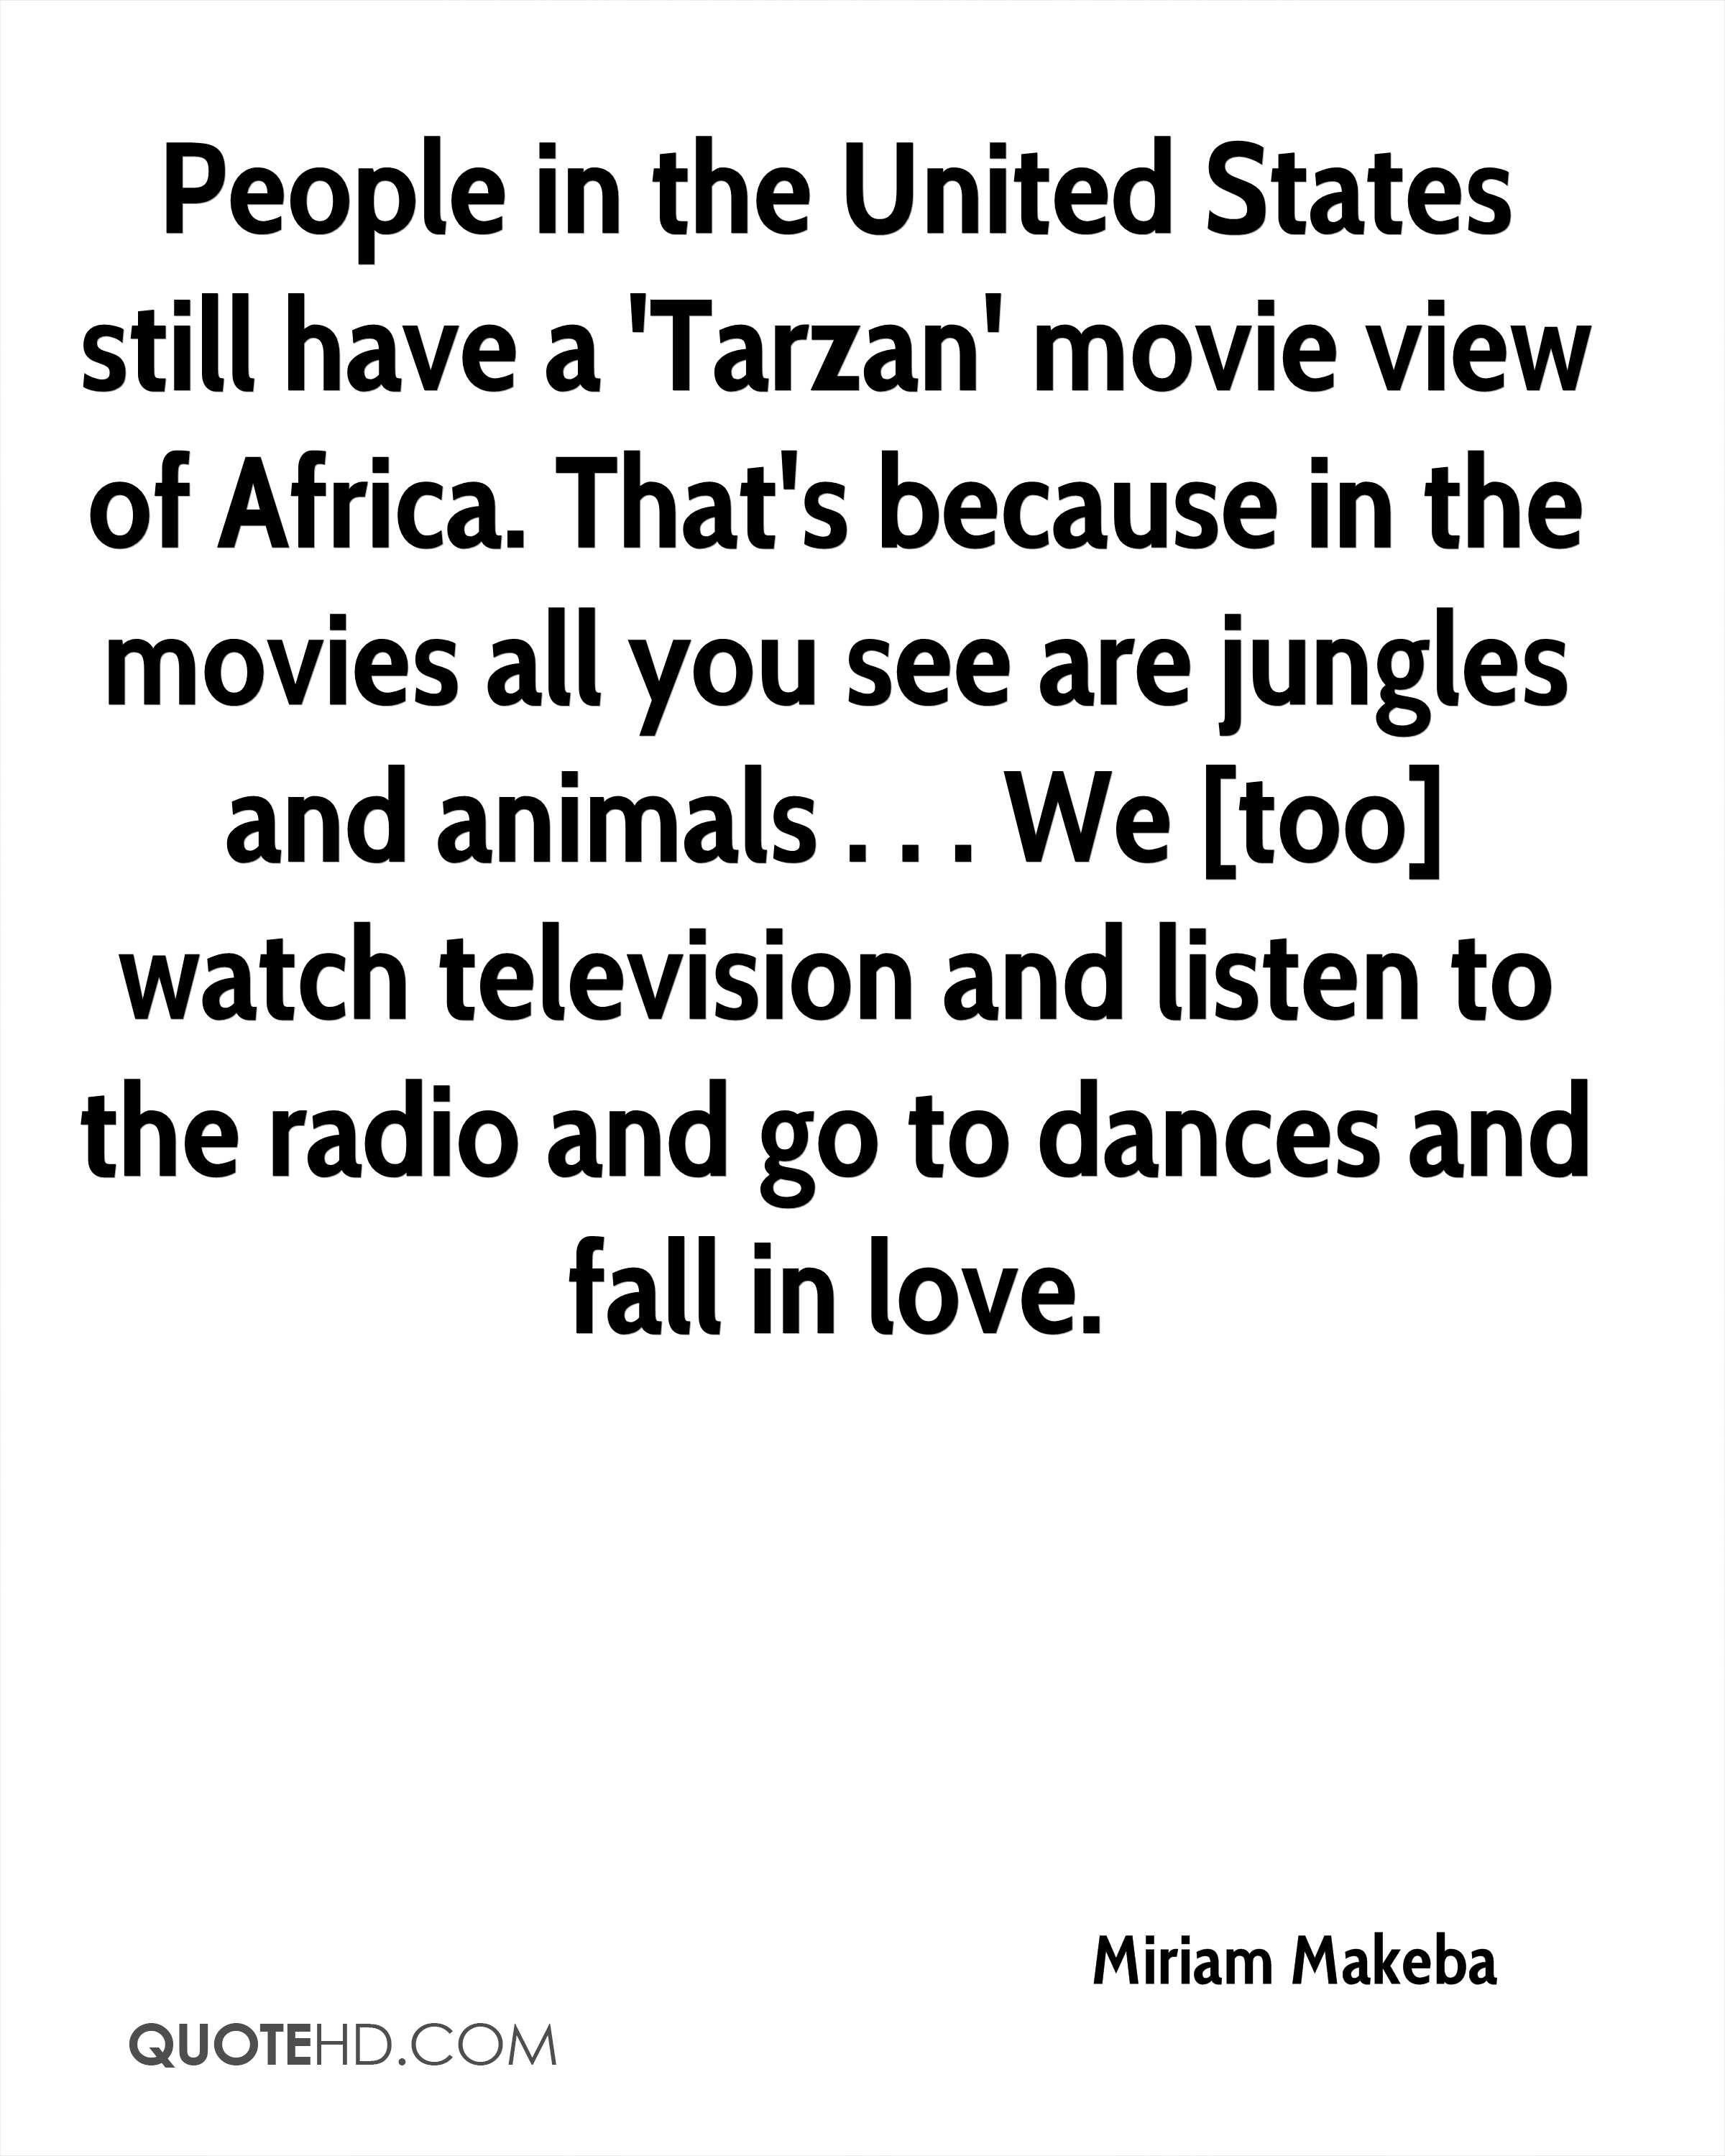 People in the United States still have a 'Tarzan' movie view of Africa. That's because in the movies all you see are jungles and animals . . . We [too] watch television and listen to the radio and go to dances and fall in love.